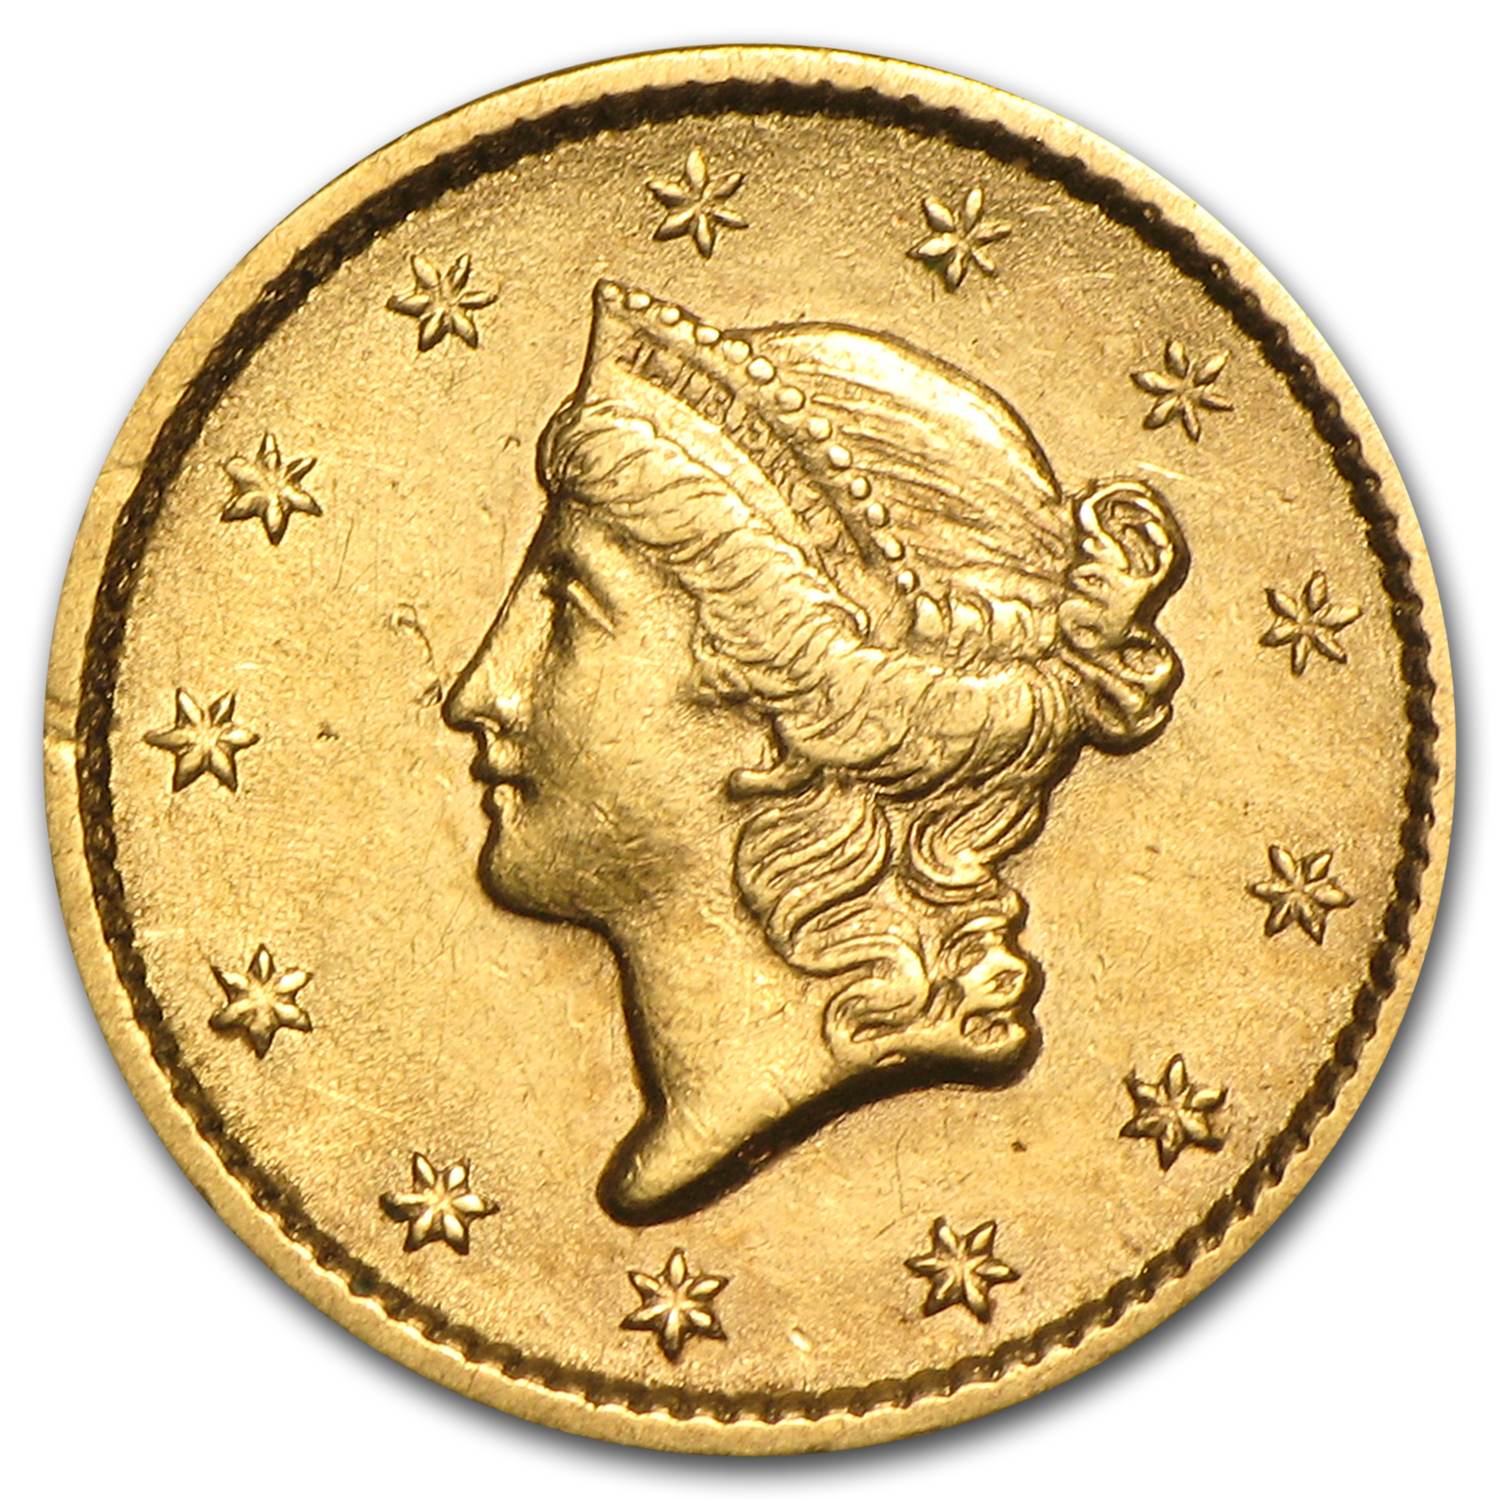 $1 Liberty Head Gold - Type 1 - Extra Fine